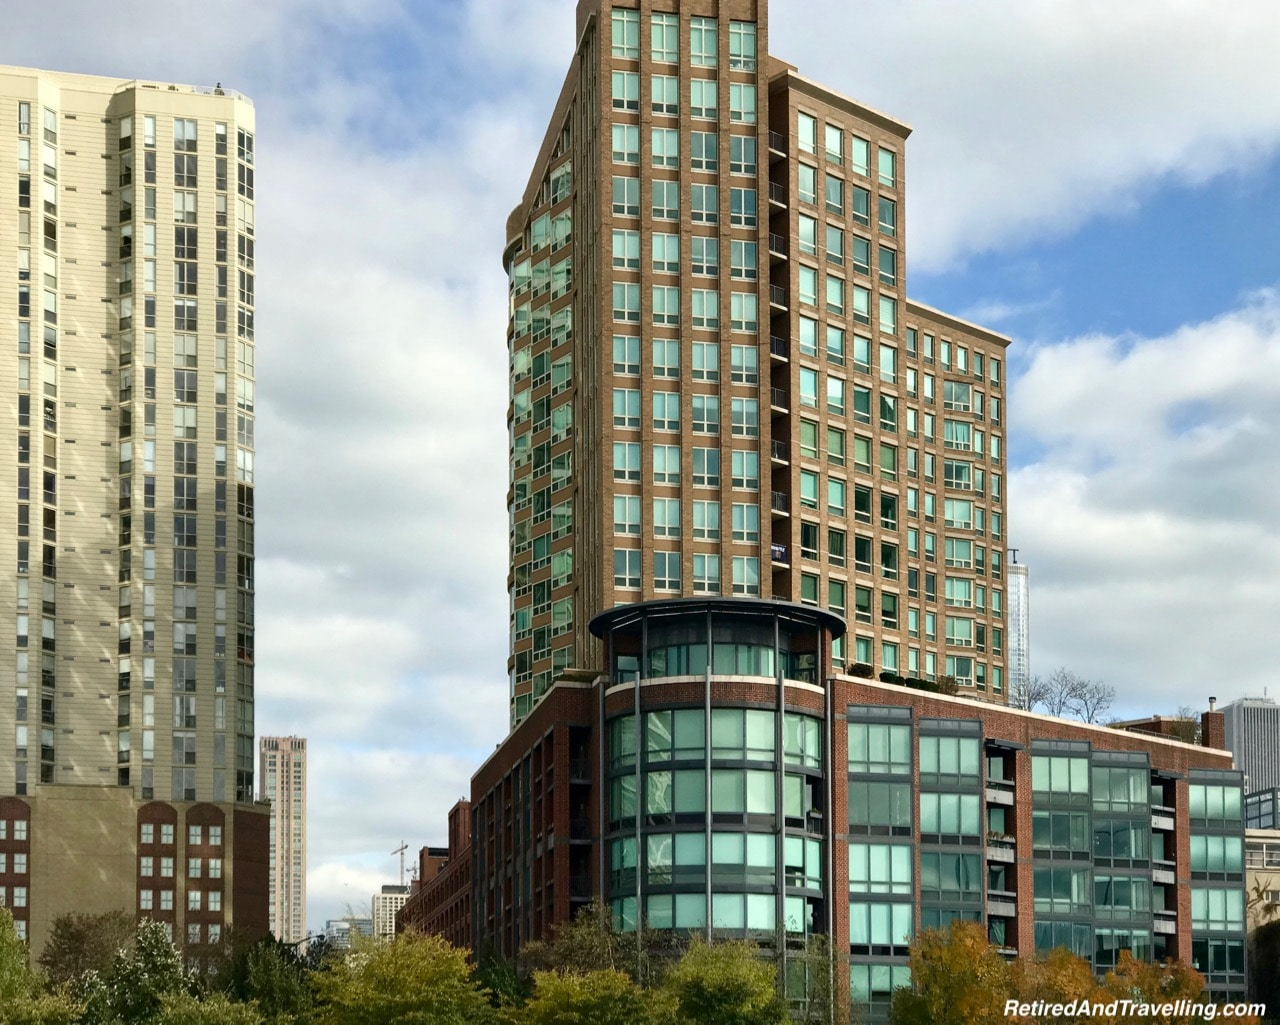 Residential Building - Eclectic Chicago Architecture.jpg